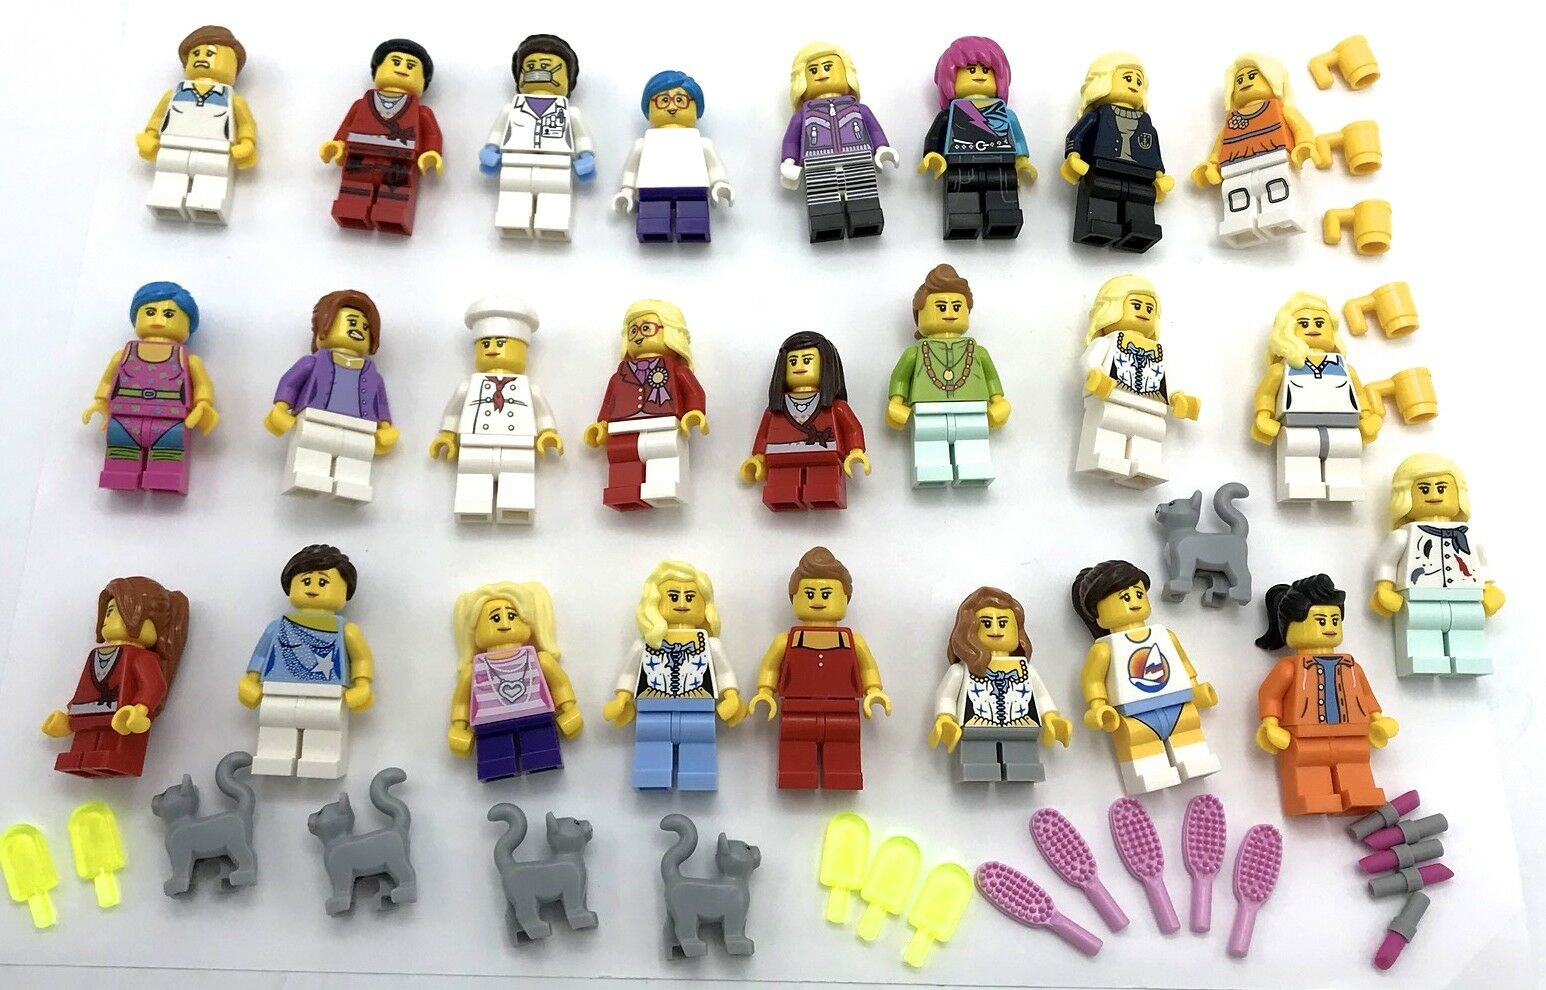 LEGO 25 NEW ASSORTED Damen AND GIRLS MINIFIGURES FIGURES WITH ACCESSORIES